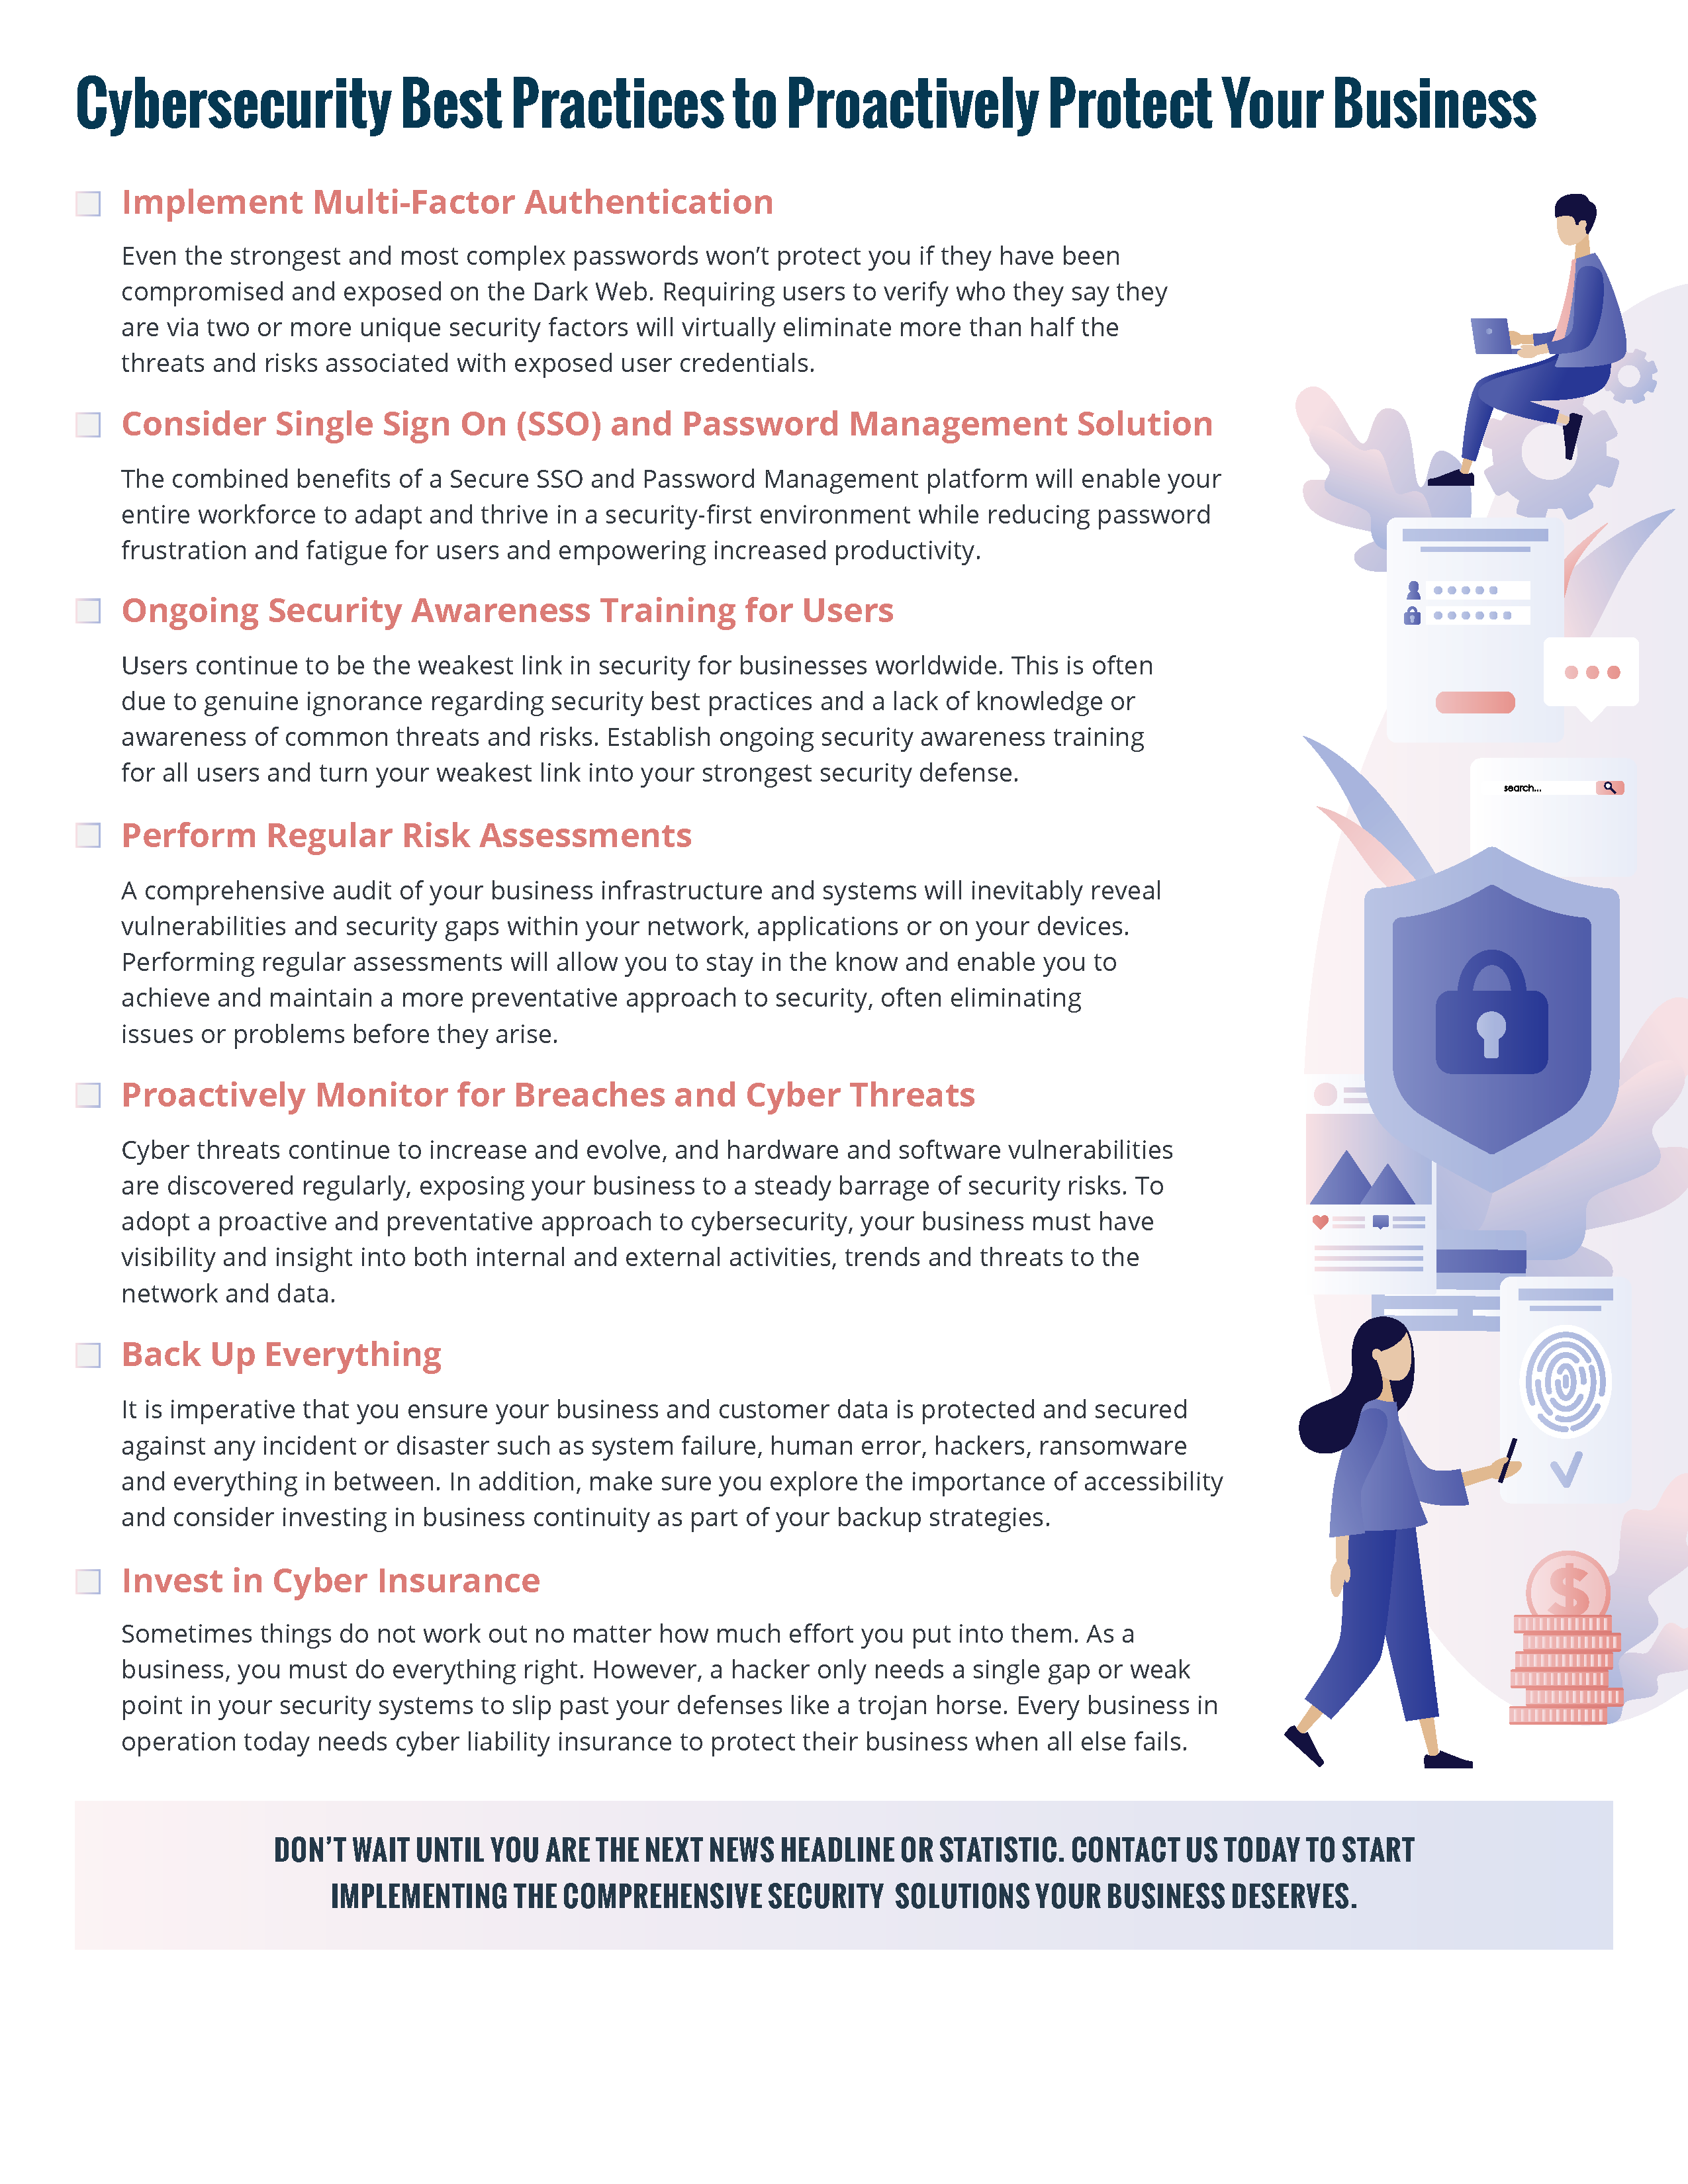 Your credentials have been compromised, now what? page 2